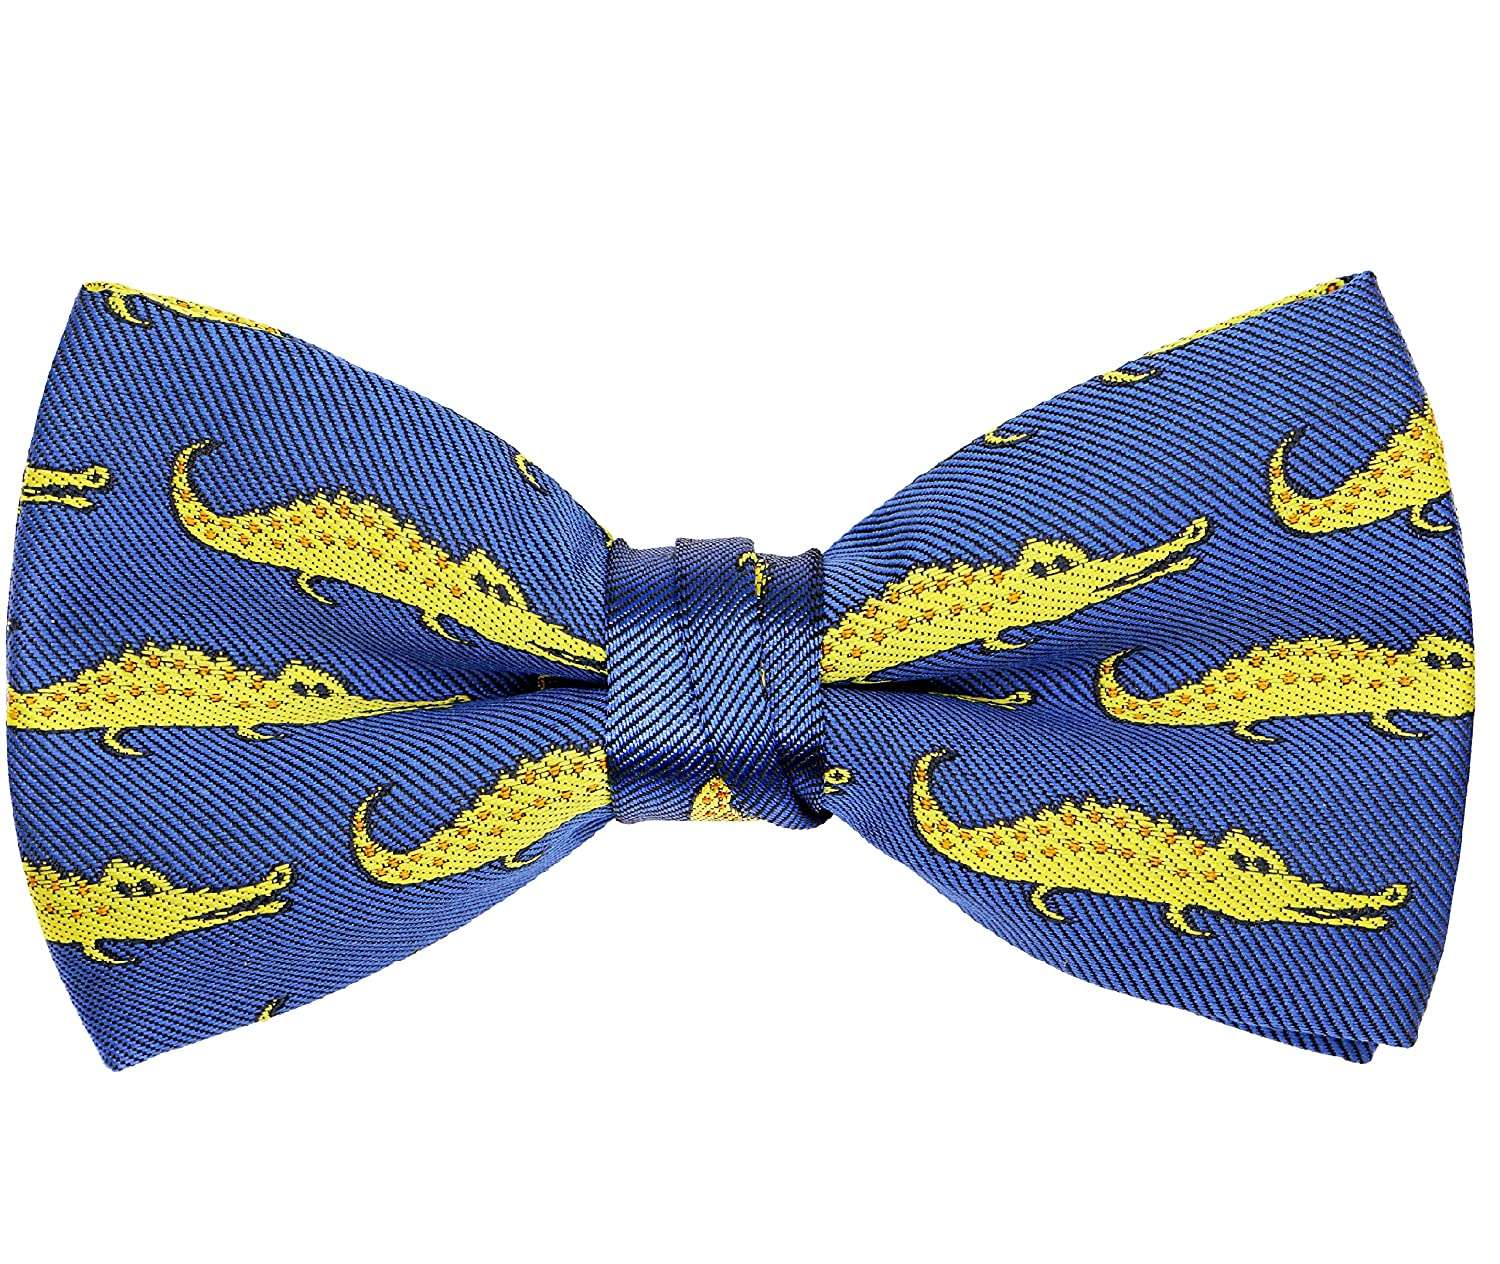 857d4316d317a This Pattern Bowtie Features Many Alligators on The Blue Background.  Perfect for Cartoon and Animals lovers. MATERIAL: Polyester Microfiber,  Handmade and ...